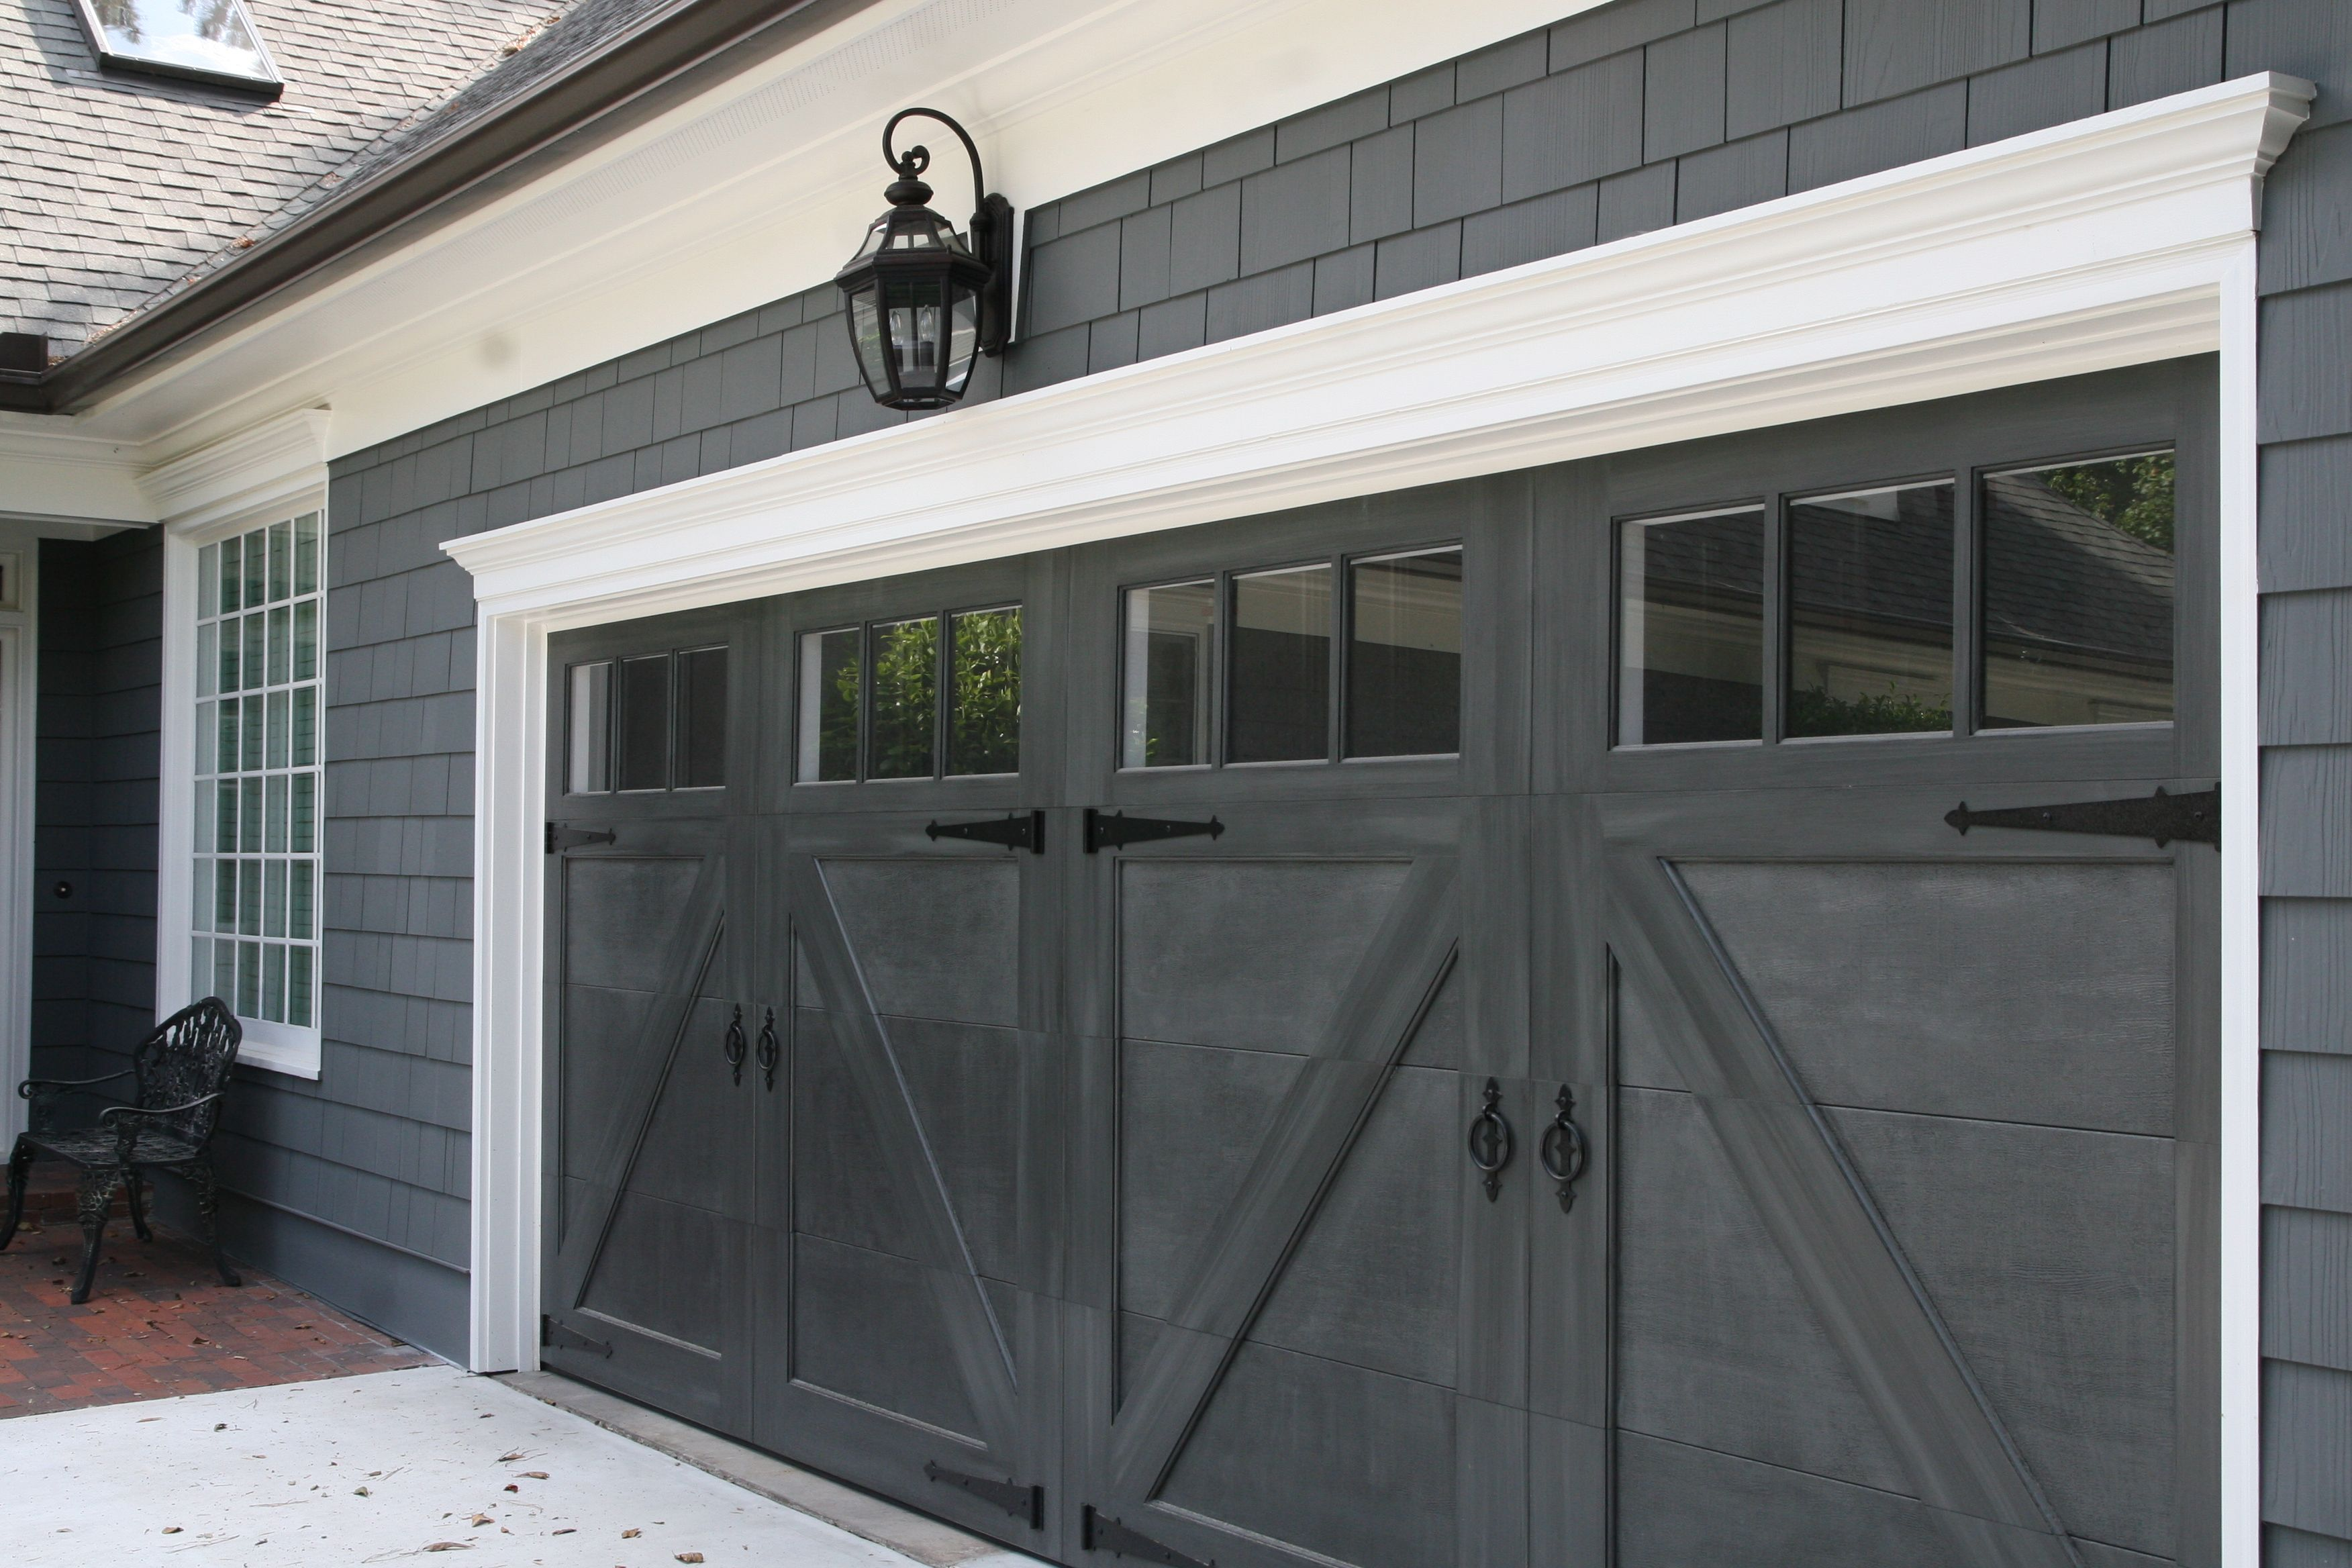 garage home doors ideas depot elegant of handballtunisie lovely photos frame luxury picture pictures trim door kit frames exterior gift and